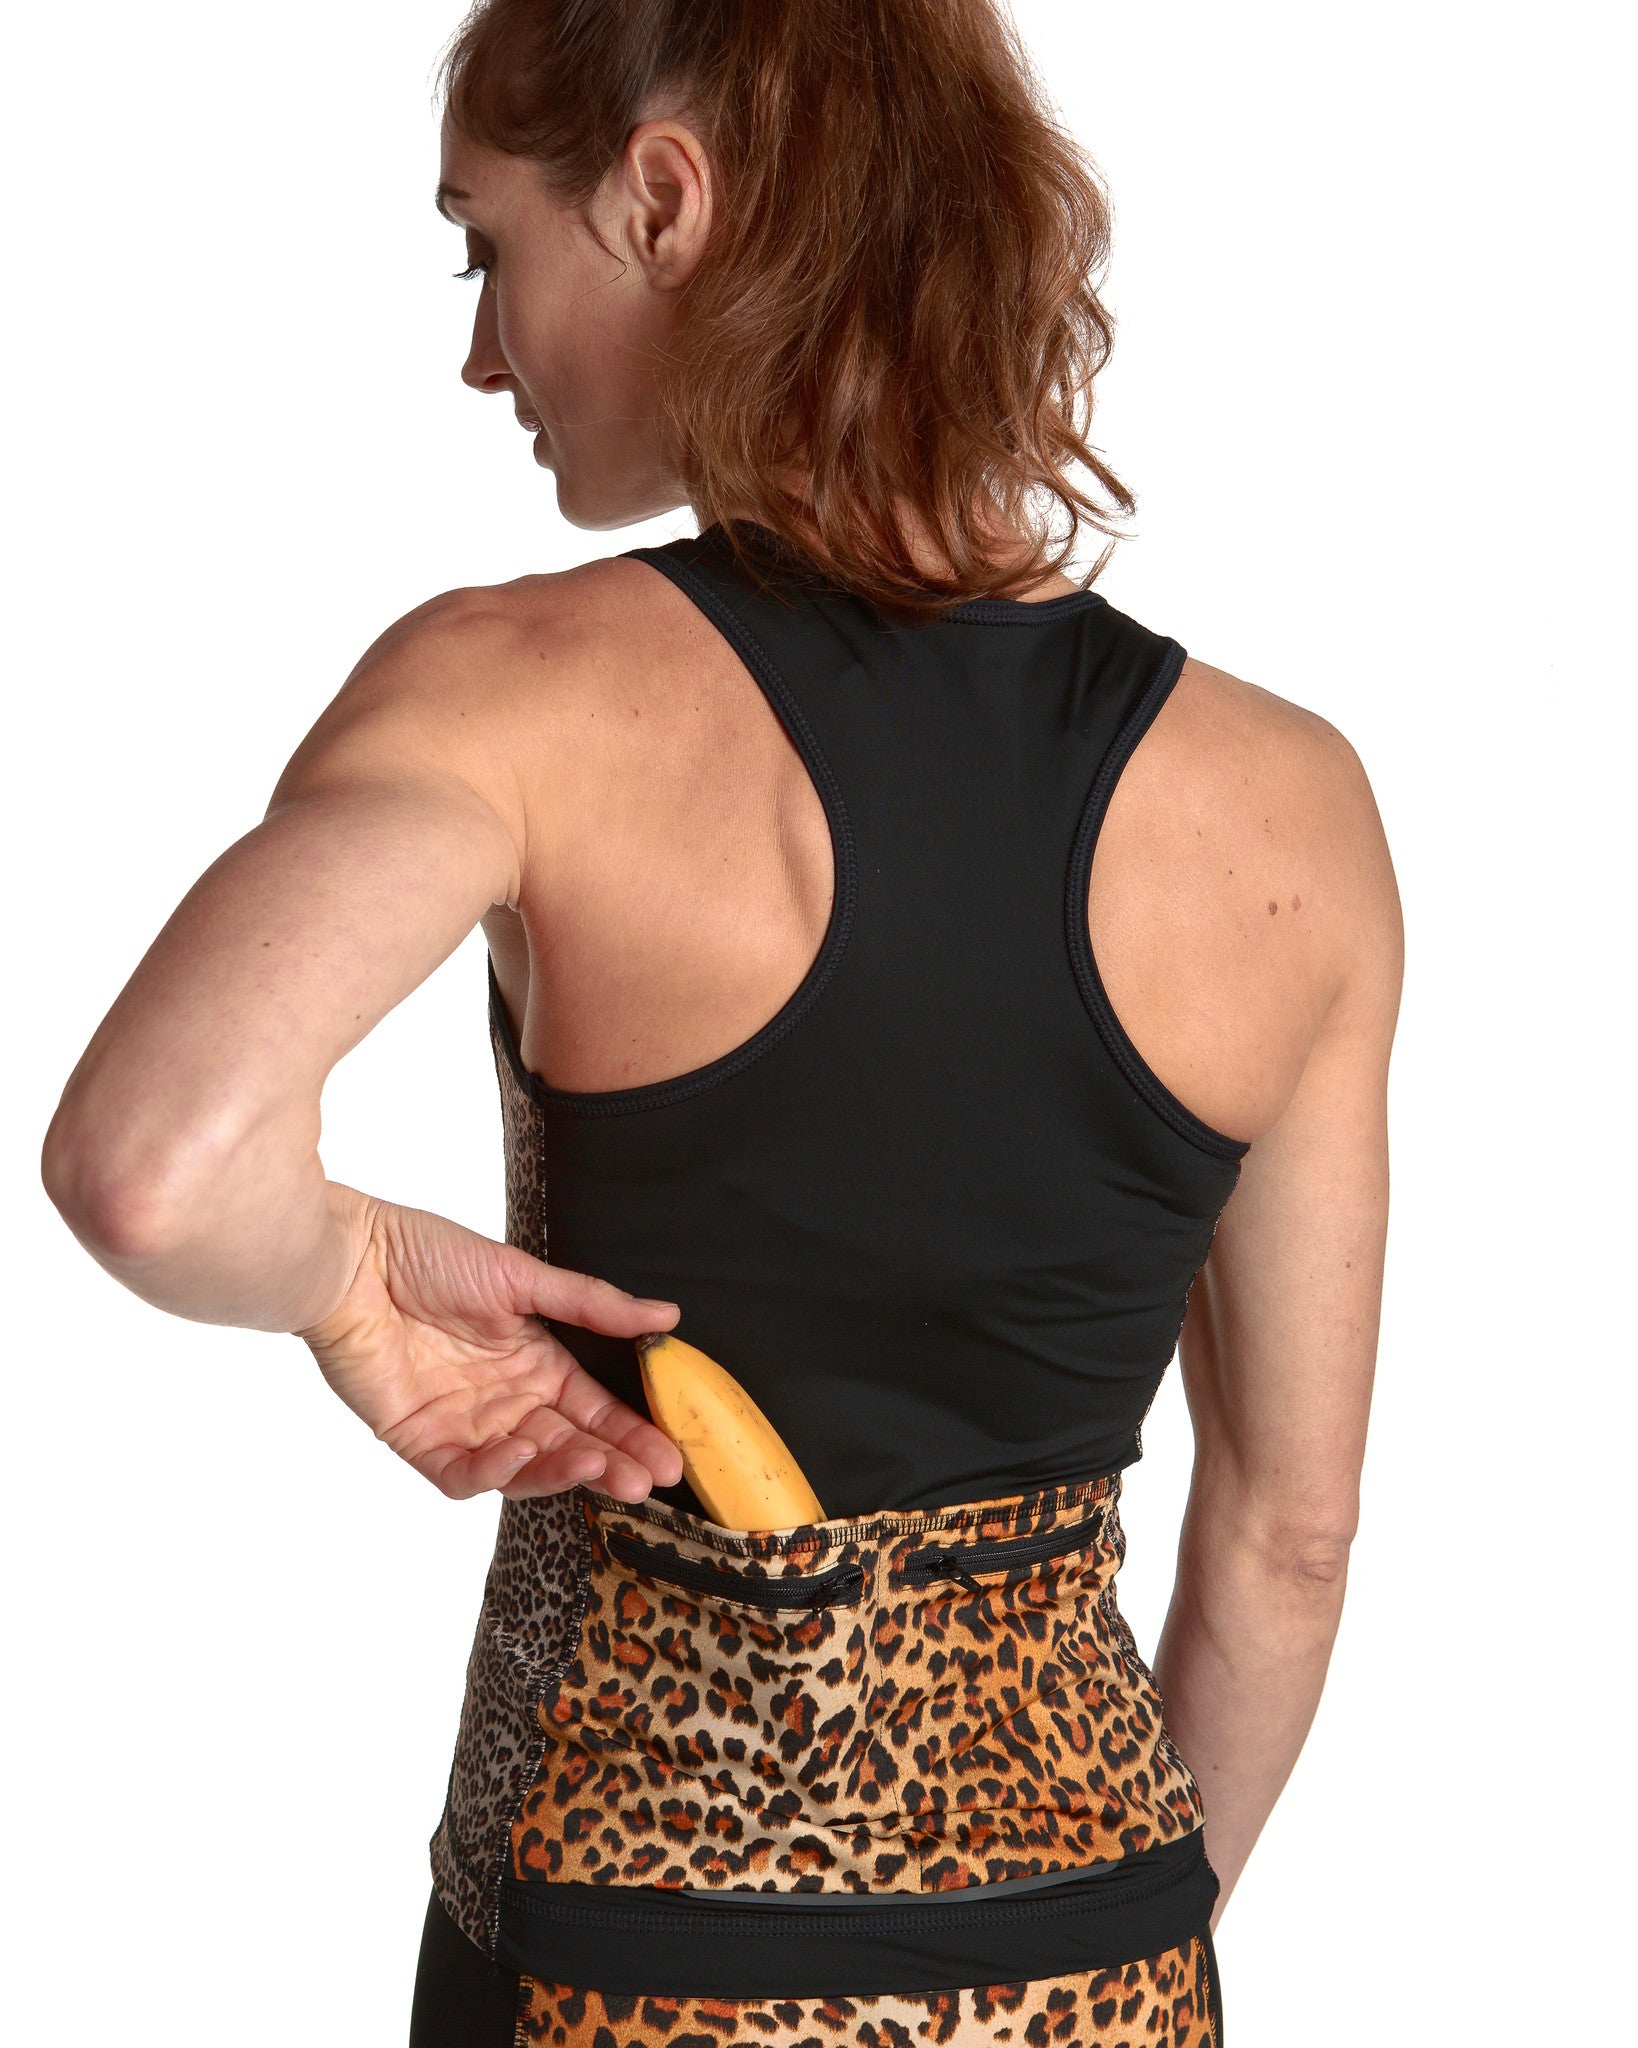 LPRD Black Tank Top Leopard Panel | Back View Detail Pocket With Banana